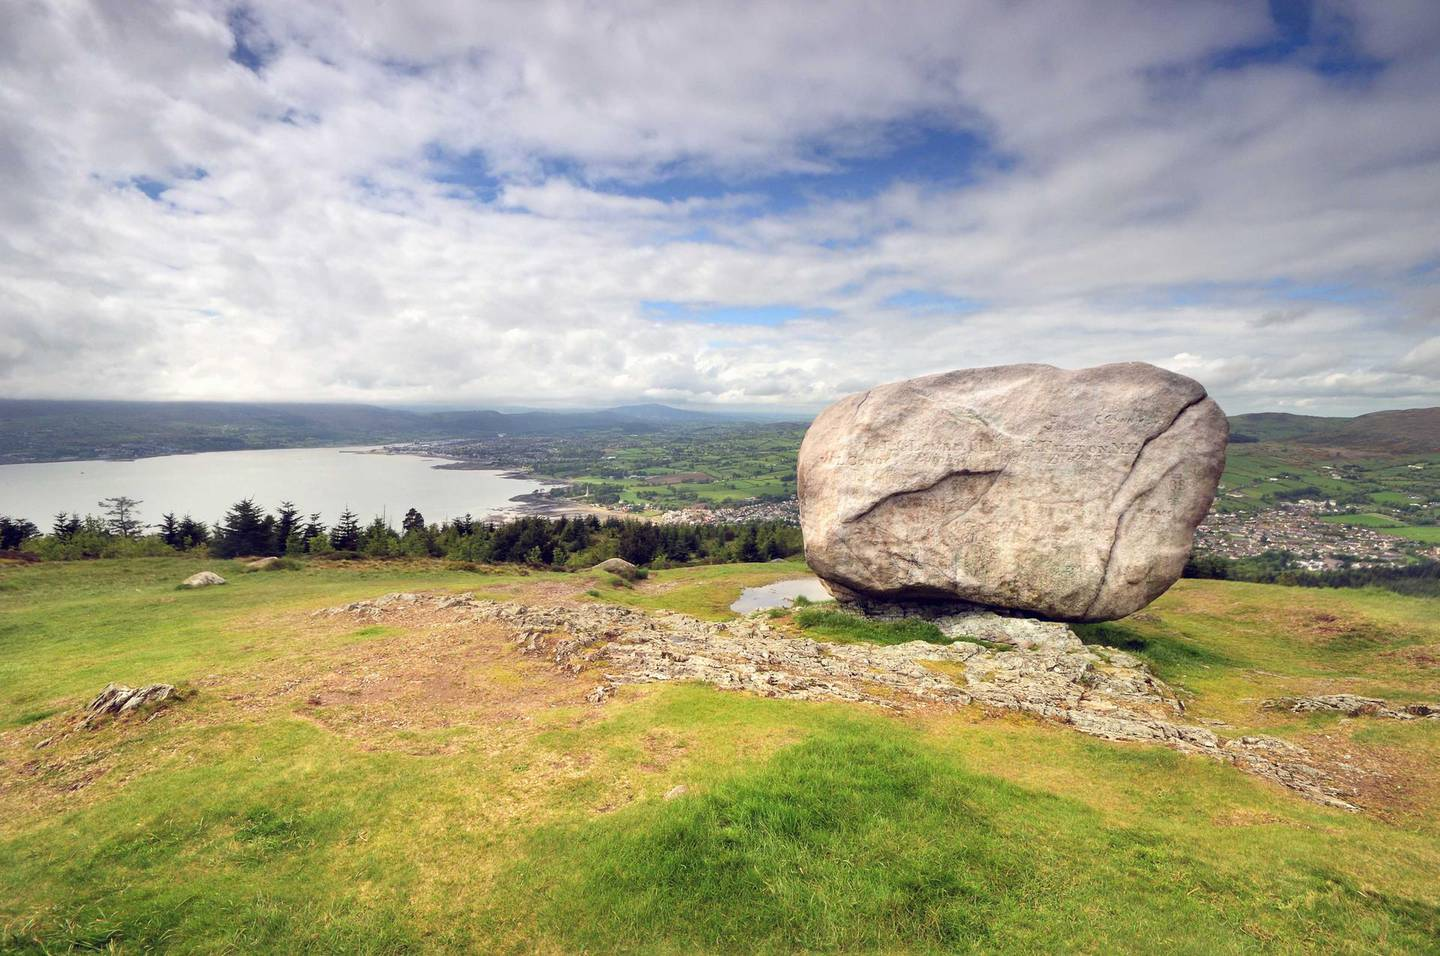 The Cloughmore Stone in Kilbroney (Rostrevor) Forest Park in County Down, Northern Ireland. Overlooking Carlingford Lough. Getty Images